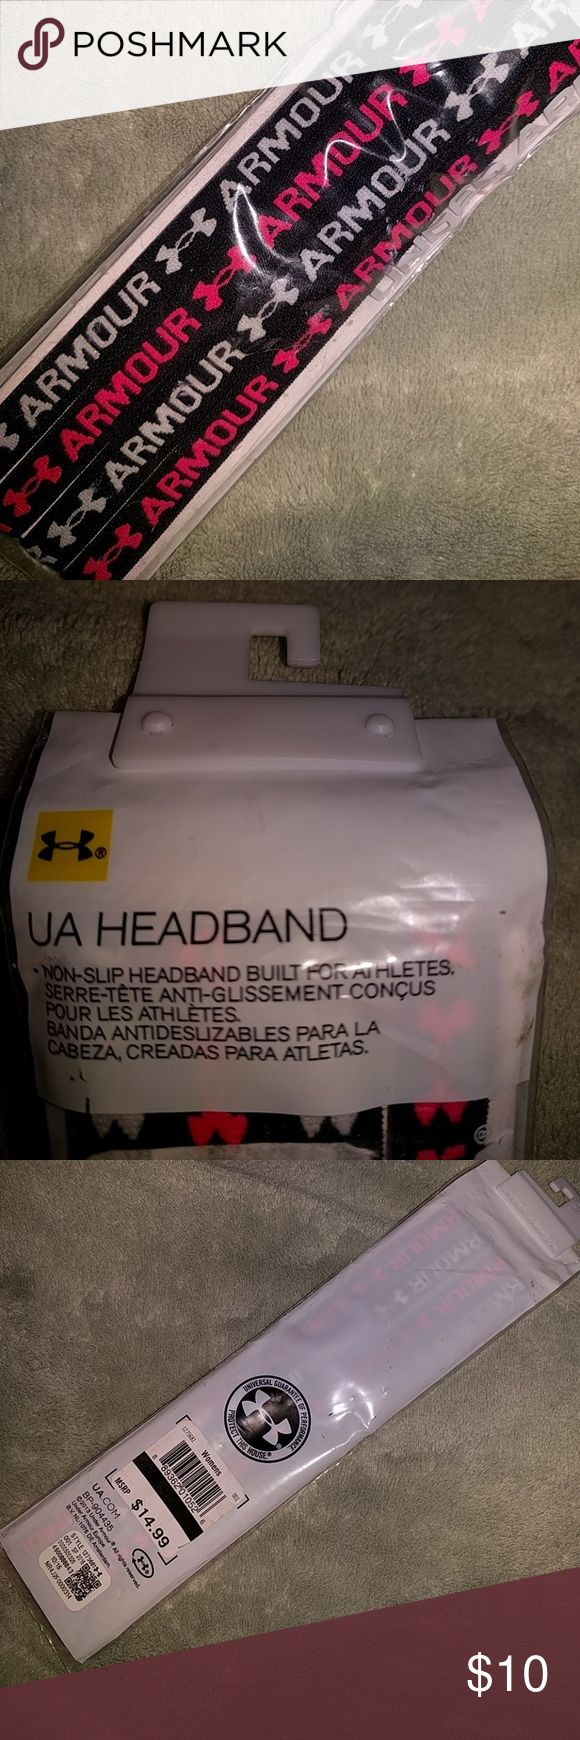 """NWT Under Armour Headbands Still in original Packaging, for sale is a set of 4 Under Armour headbands, 2 are black with white writing and 2 are black with pink writing. All have the Under Armour symbol on them. They are non-stop headbands """" built for Athletes"""" Under Armour Accessories Hair Accessories"""